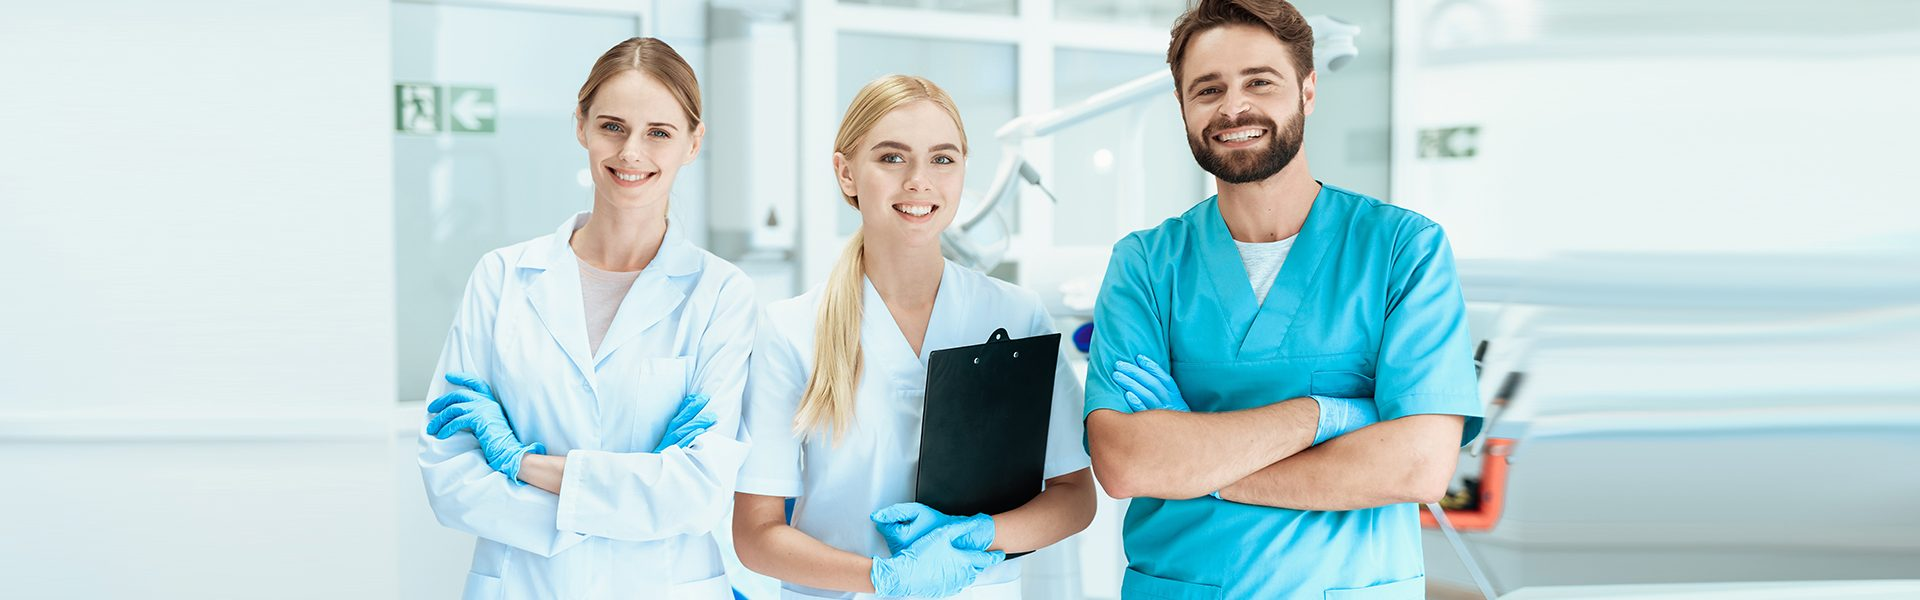 Don't Make These 3 Mistakes When Hiring Dental Staff